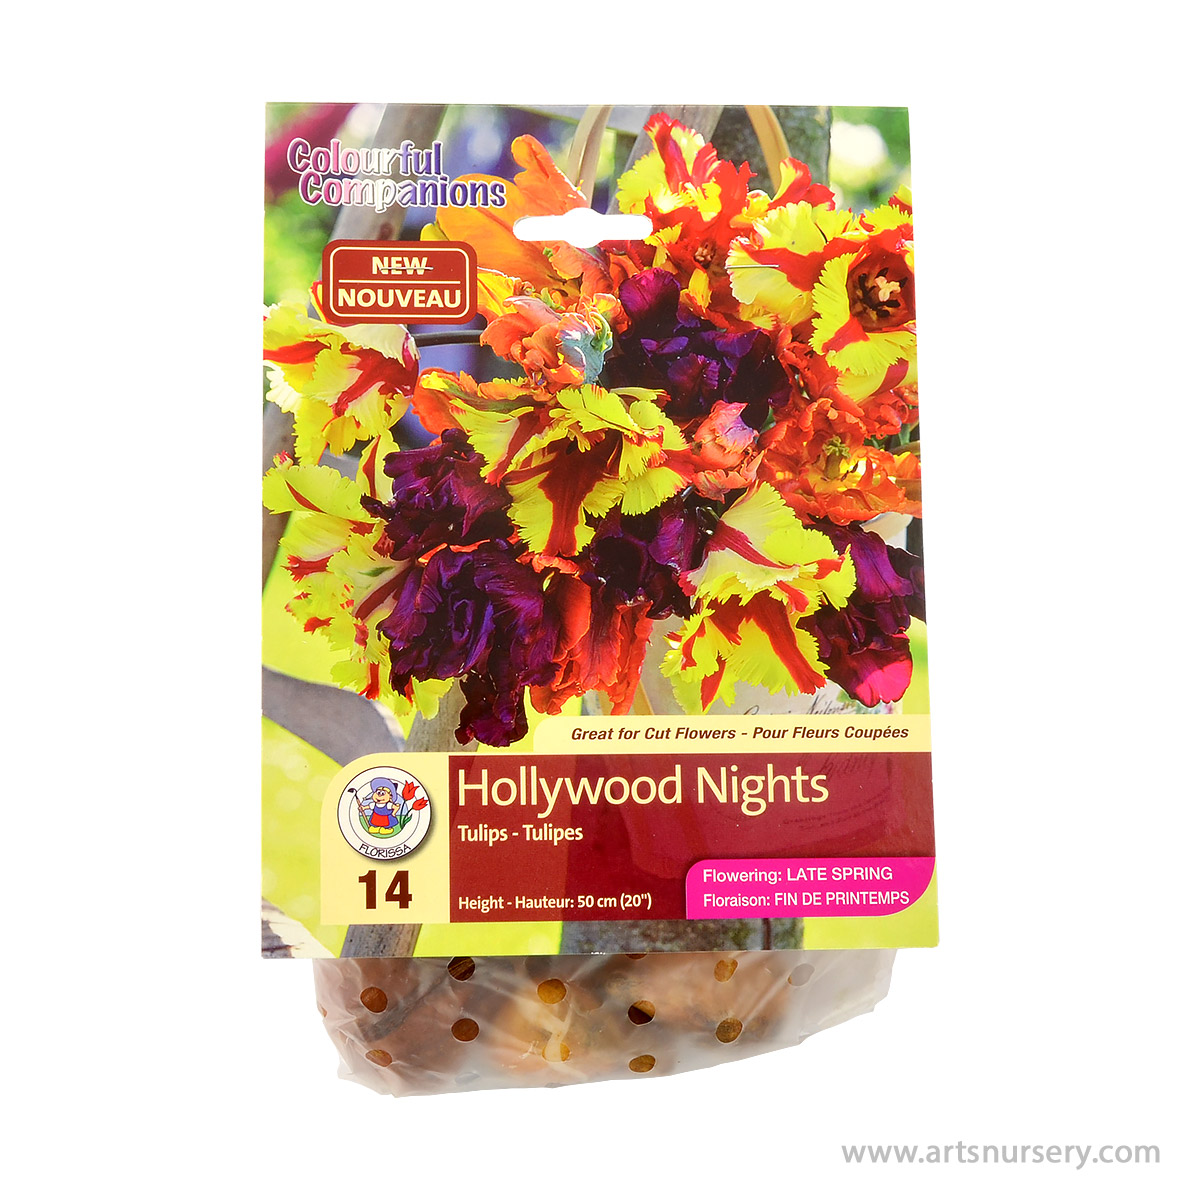 Colourful Companions Tulipa 'Hollywood Nights' Bulbs